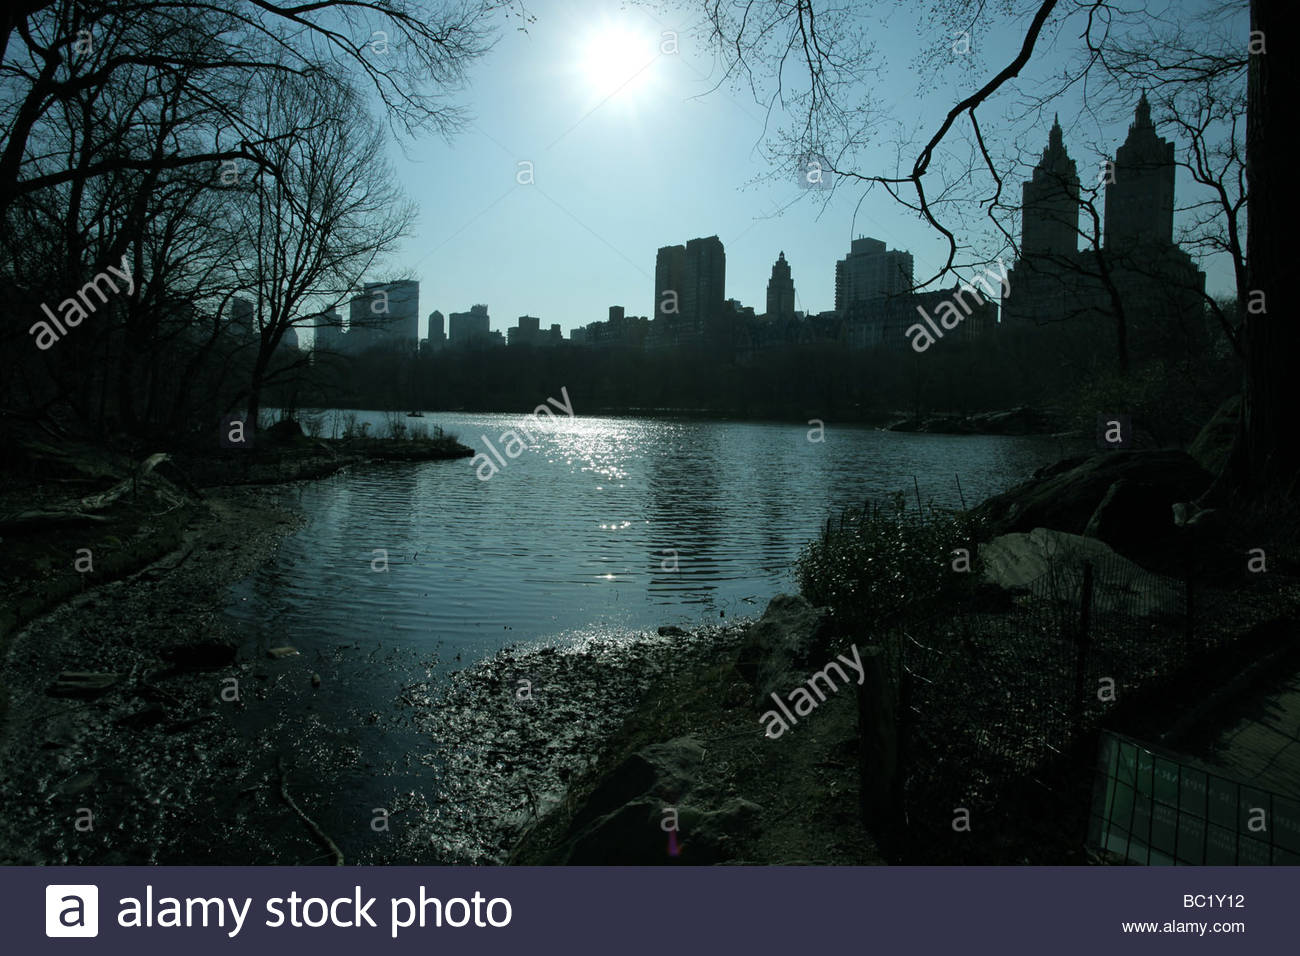 NYC lake in the park - Stock Image